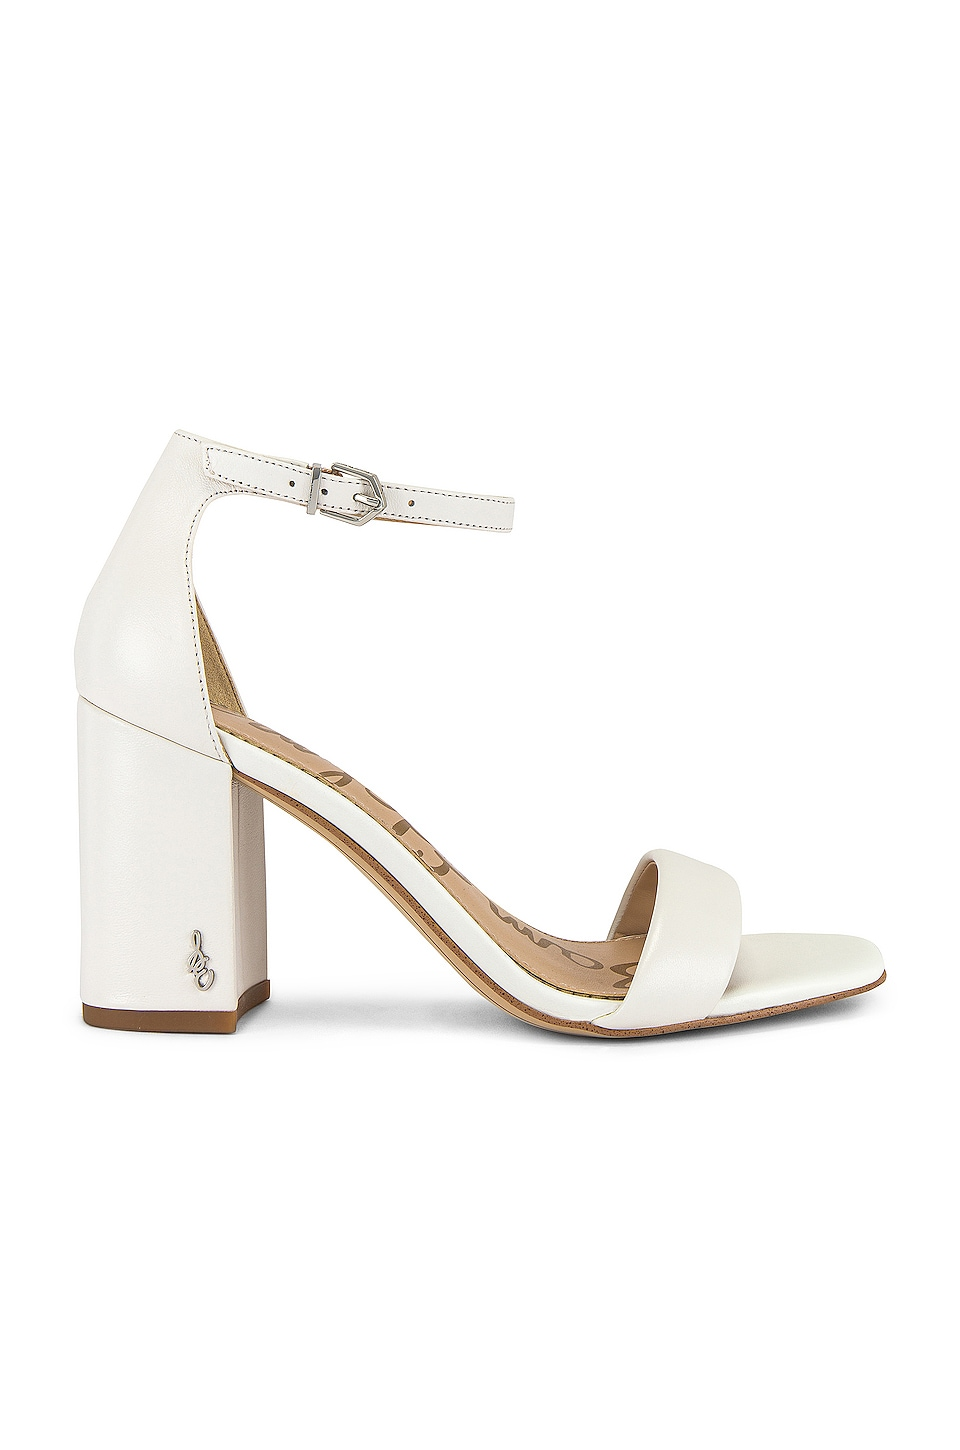 Sam Edelman Daniella Sandal in Bright White